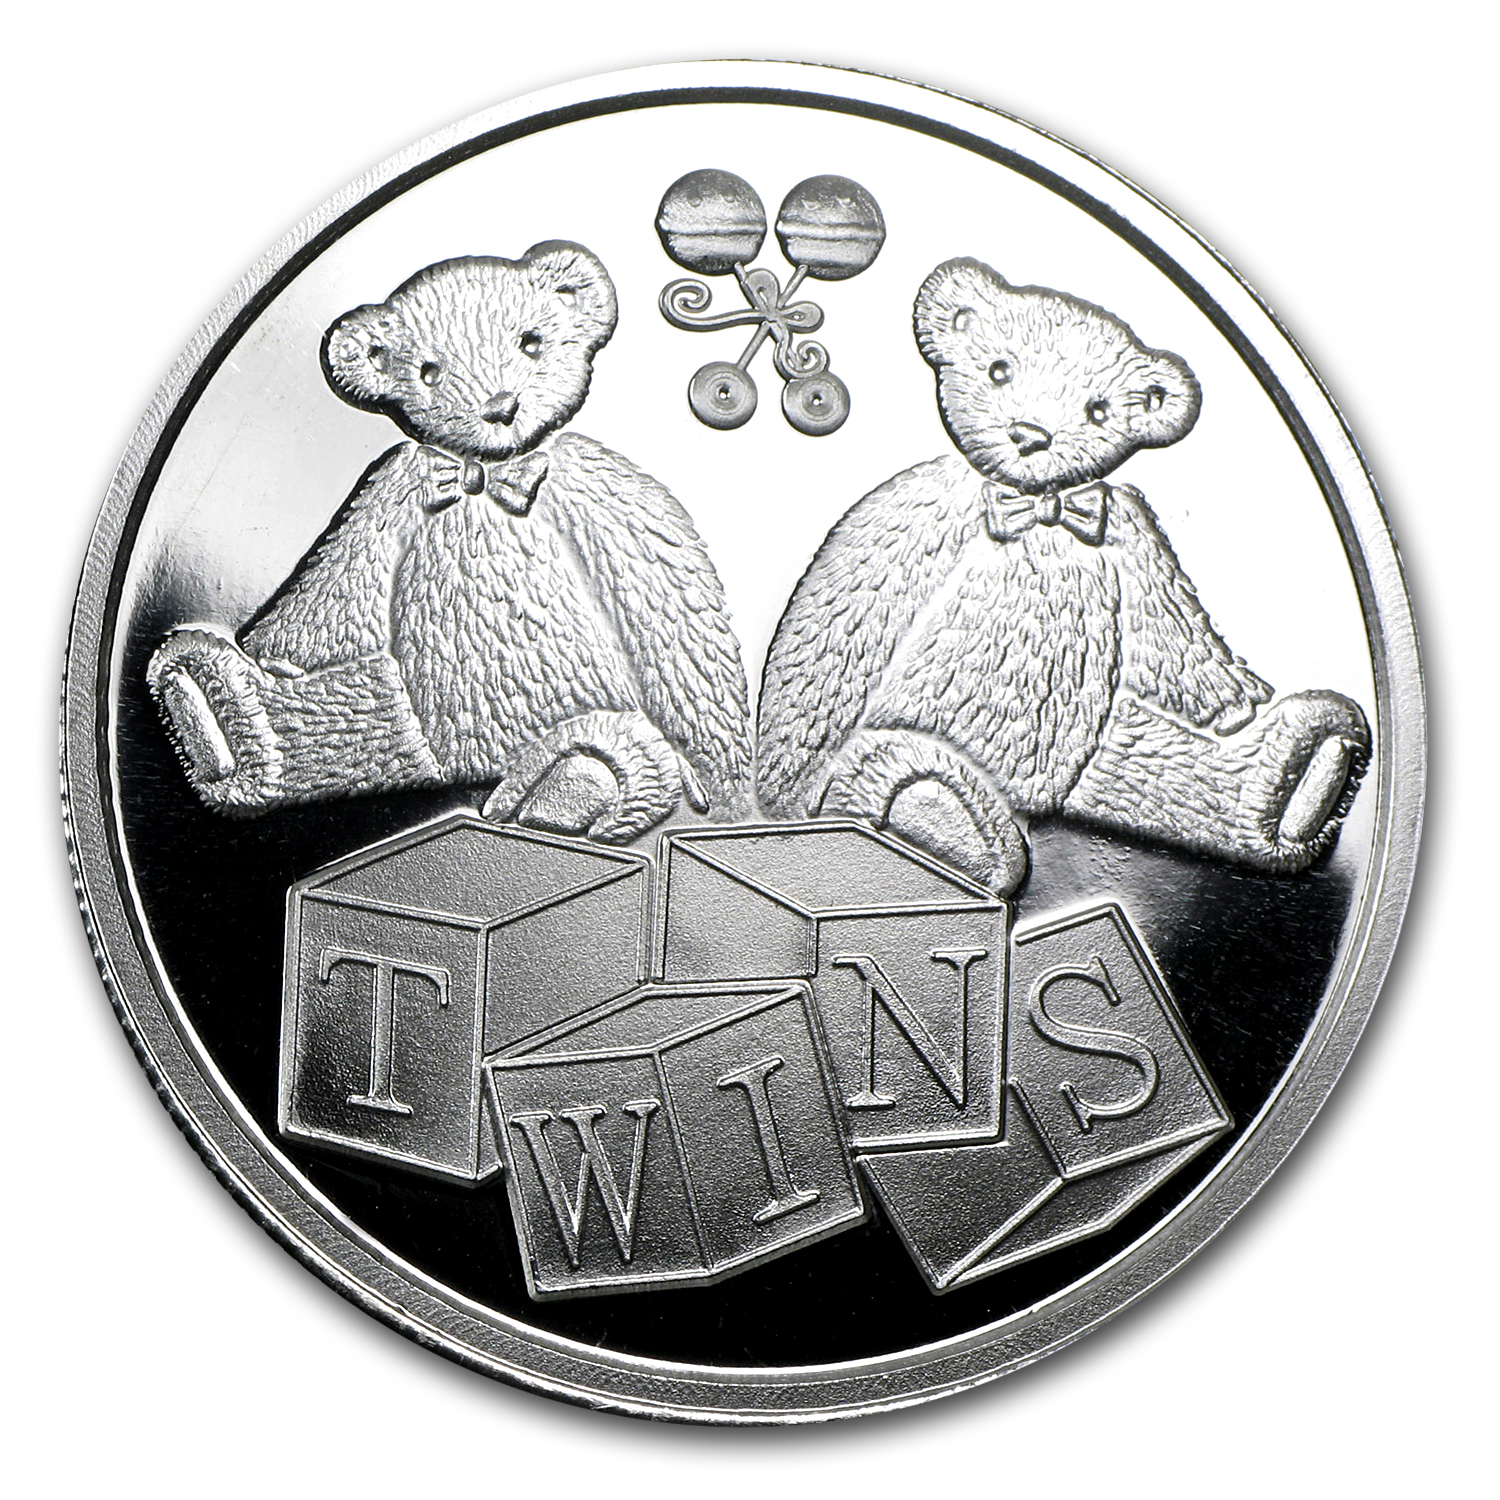 1 oz Silver Rounds - Twin Baby (w/Box & Capsule)